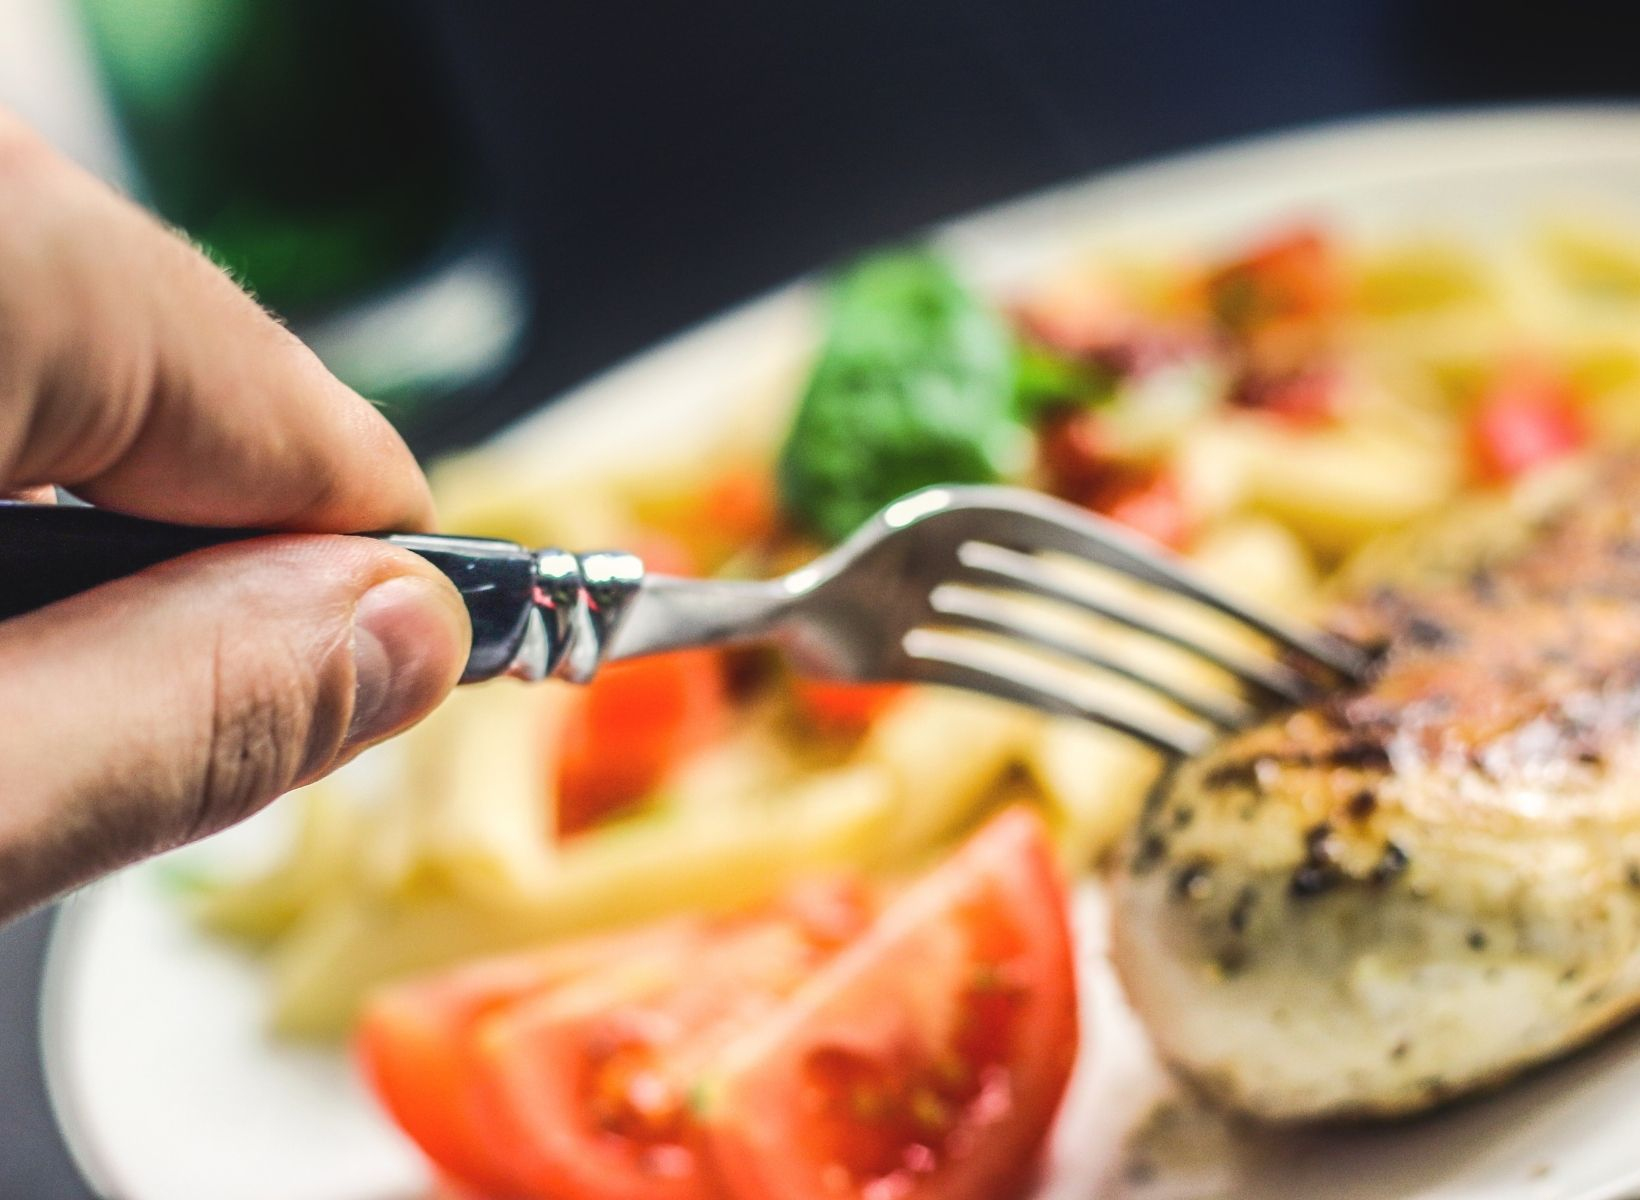 A hand holding a fork poking a cooked chicken breast on a white plate with a tomato slice and blurred vegetables